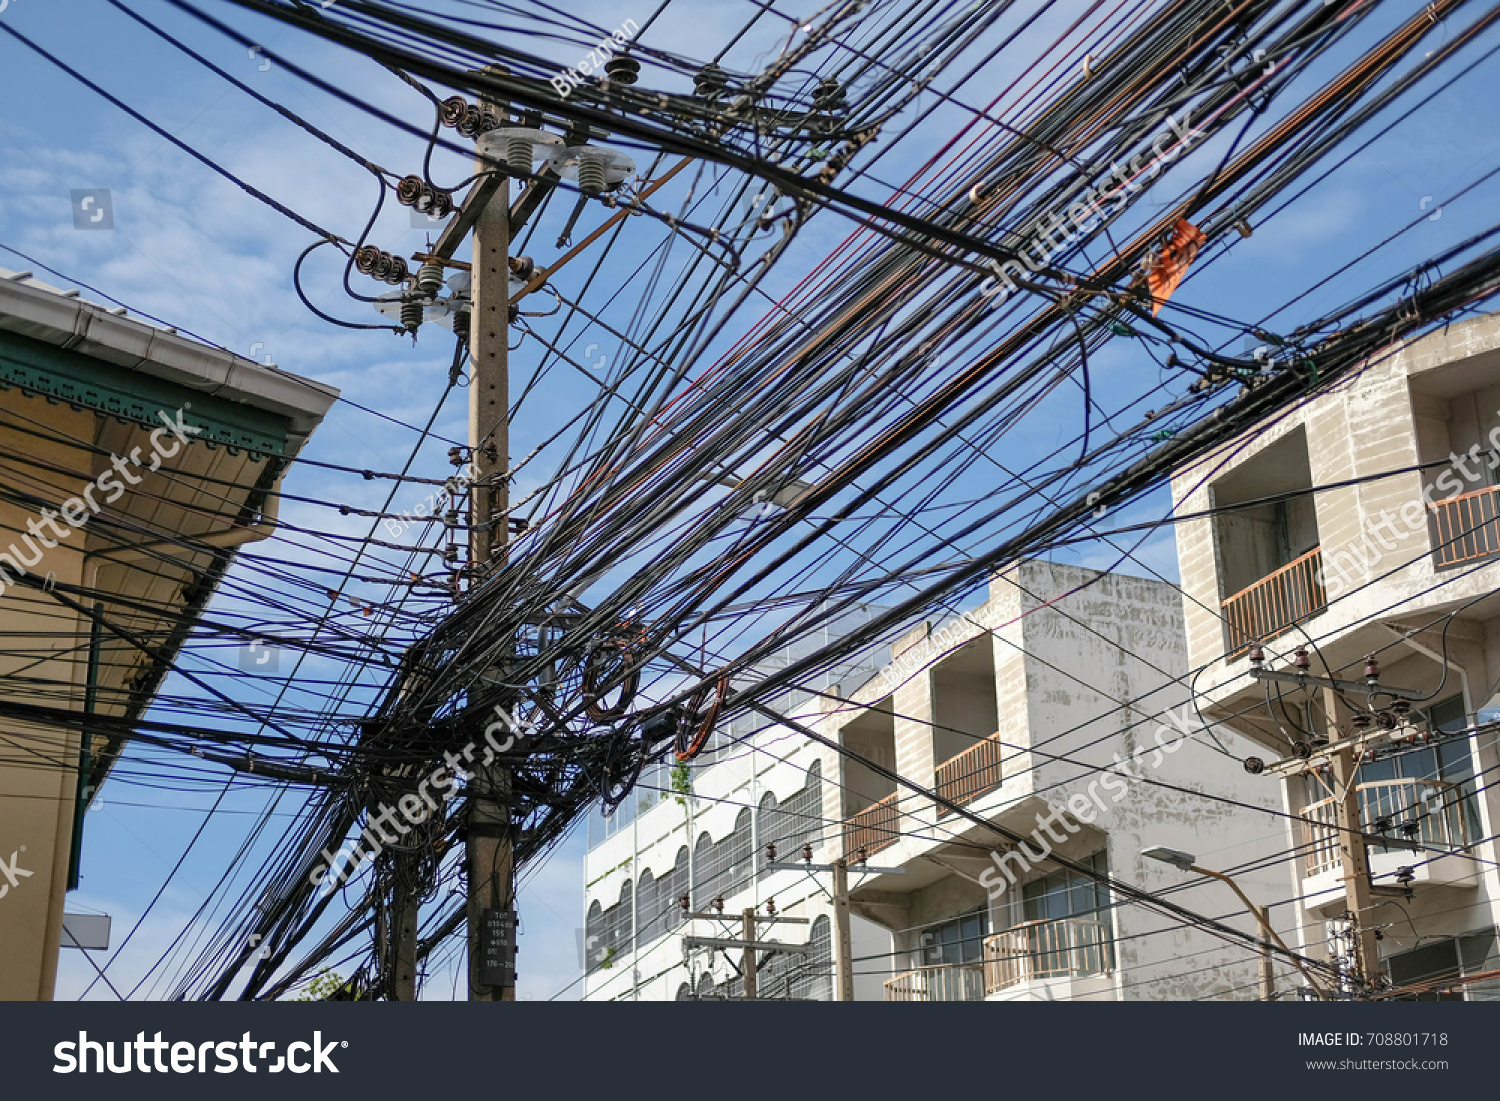 Pillar Lots Messy Electric Wires On Stock Photo Edit Now 708801718 Electrical Wiring With Of The Sky And Building Background At Thailand